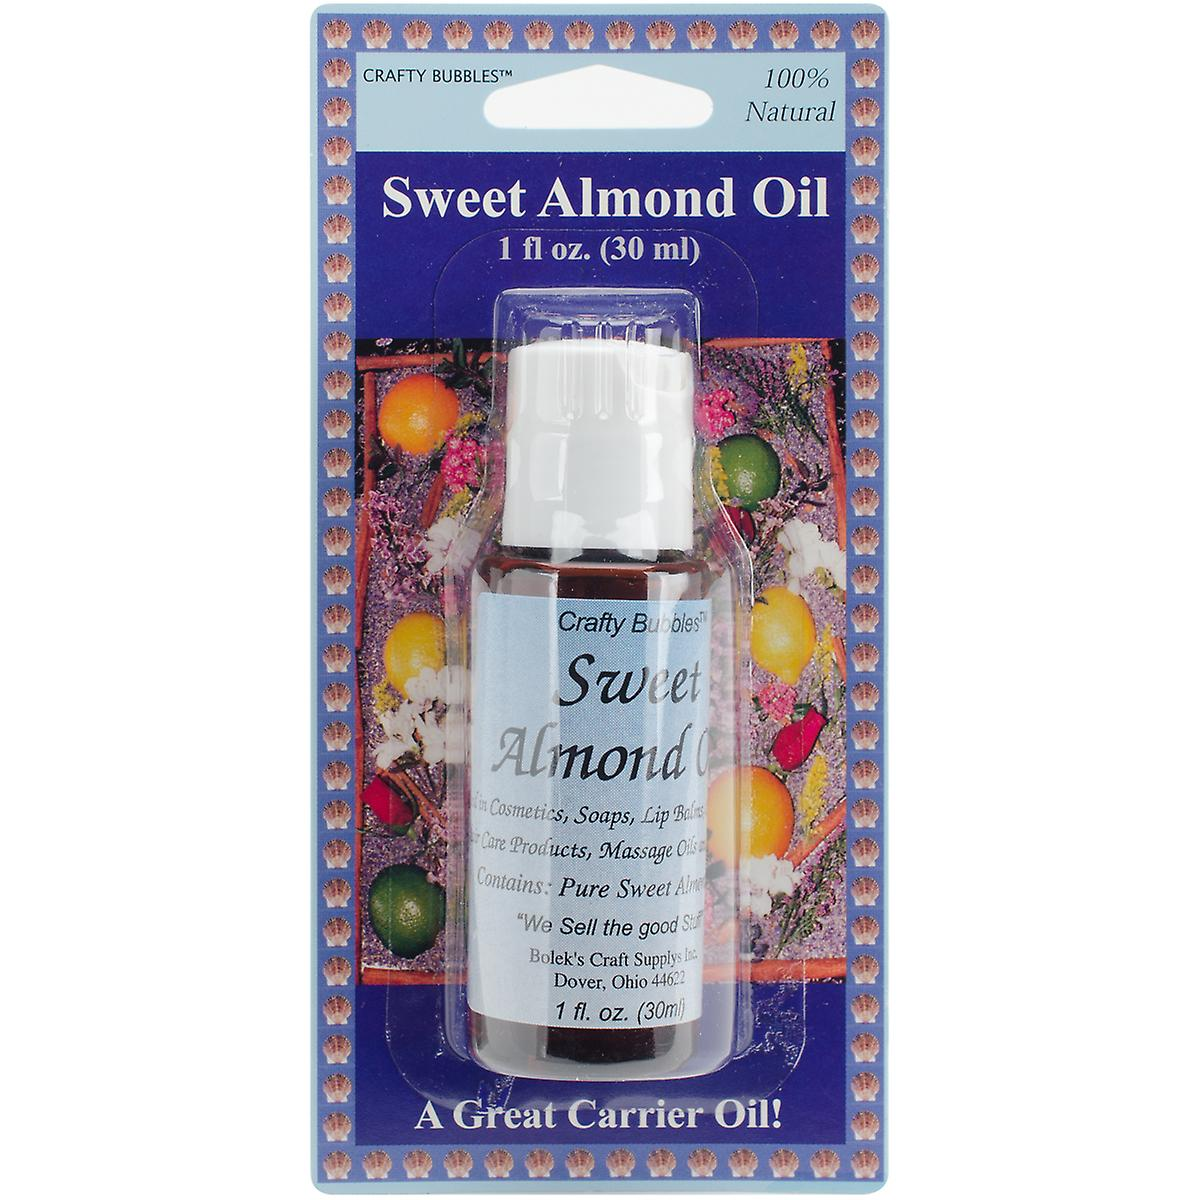 Boleks CB51 1 oz Sweet Almond Oil